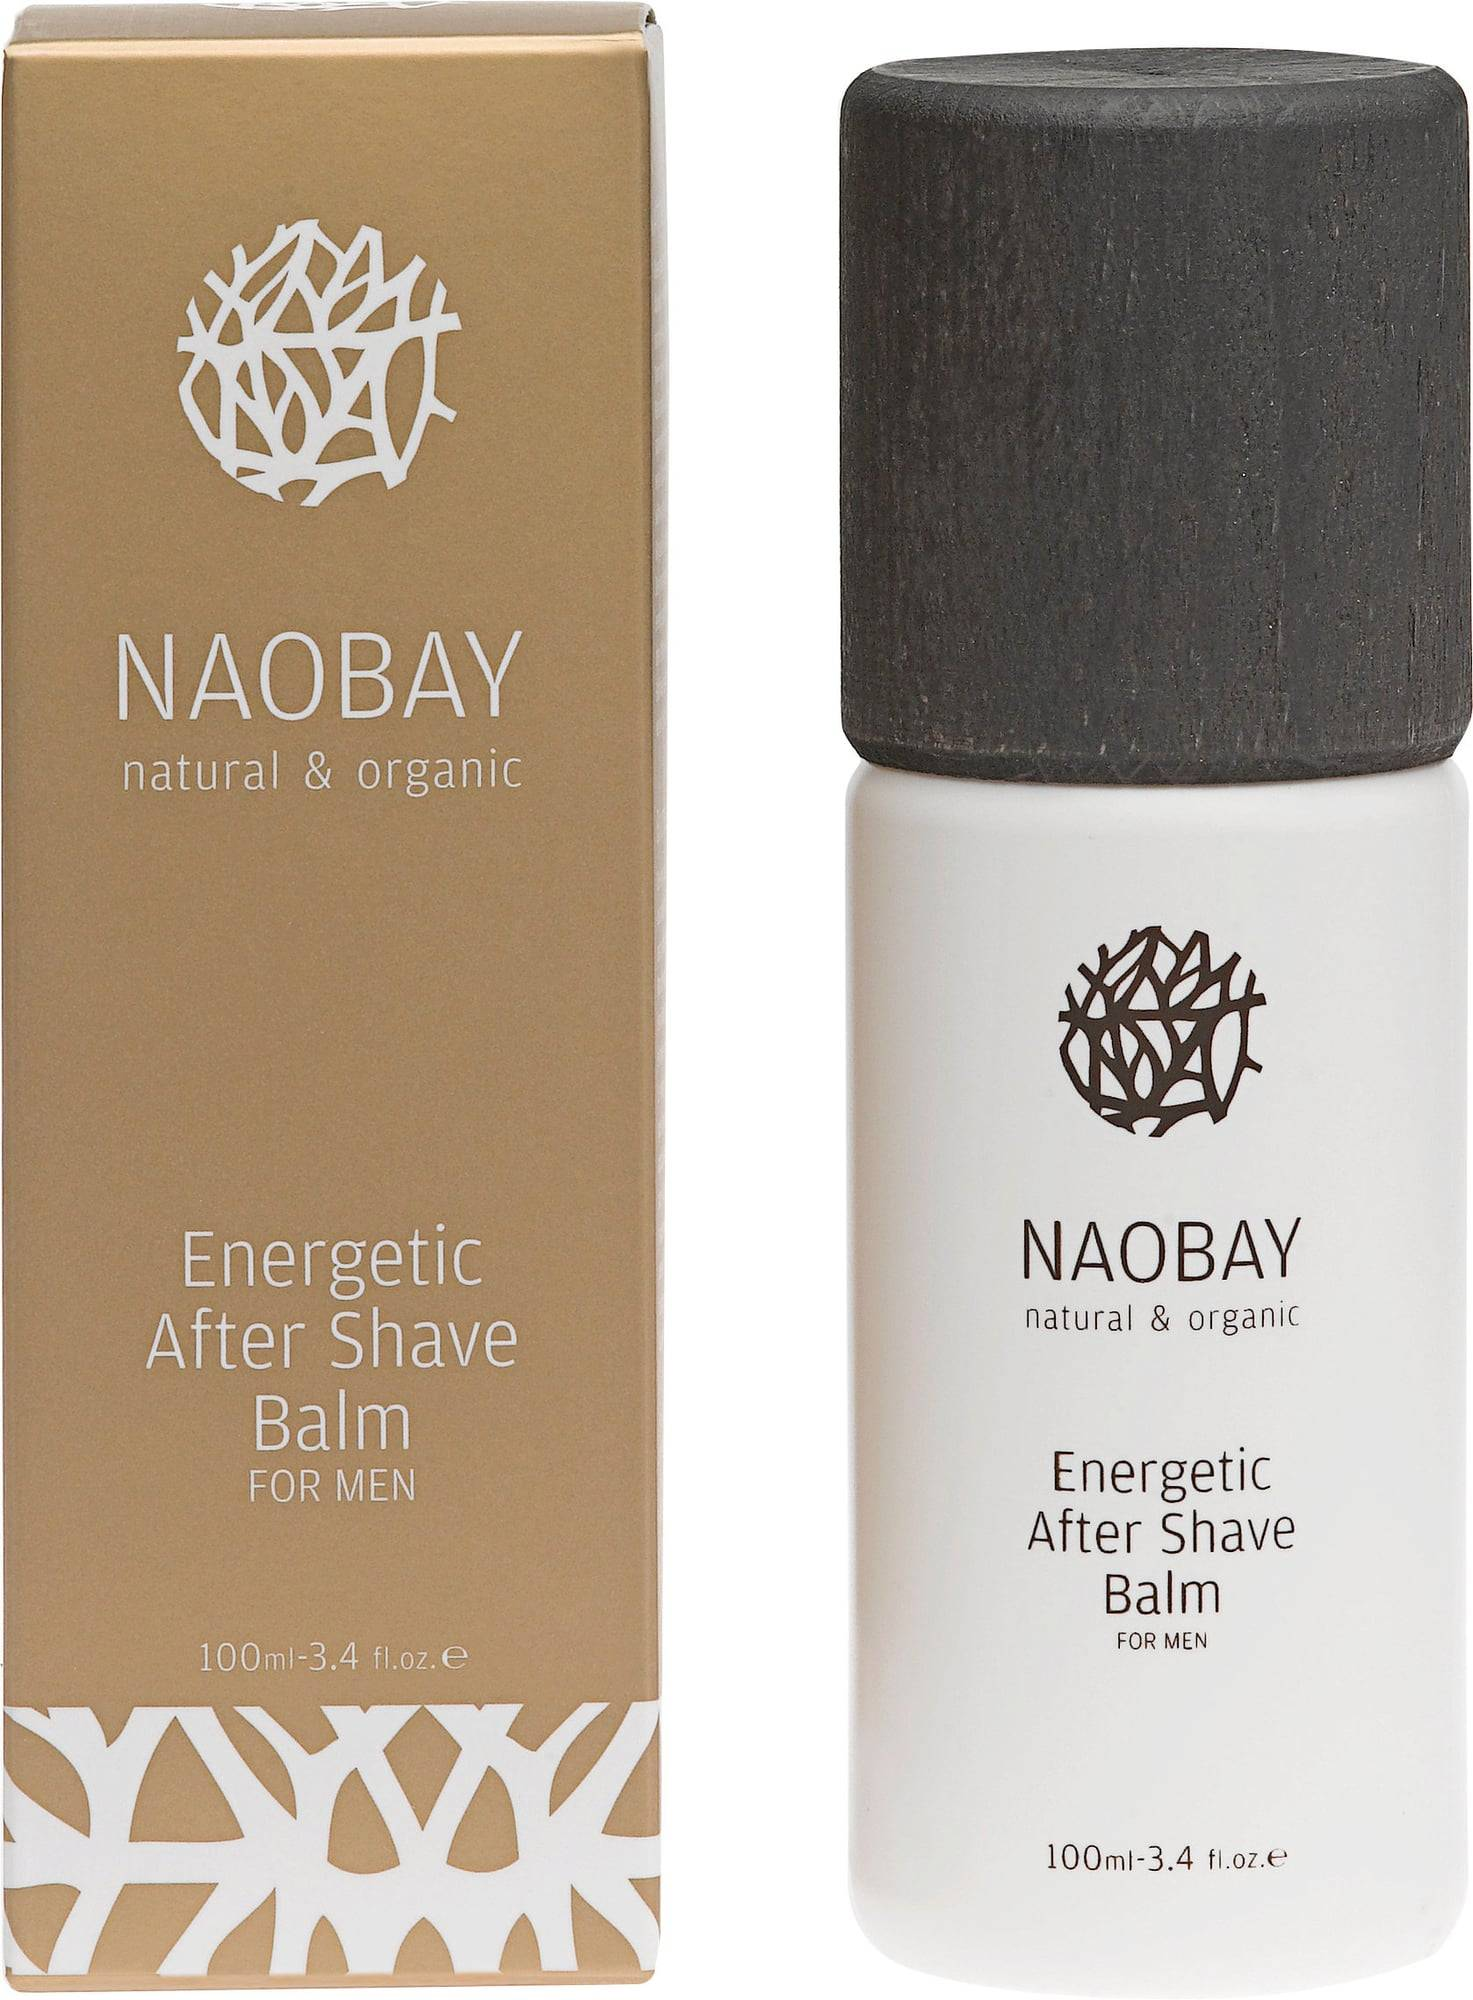 NAOBAY Energetic After Shave Balm For Men - 100 ml